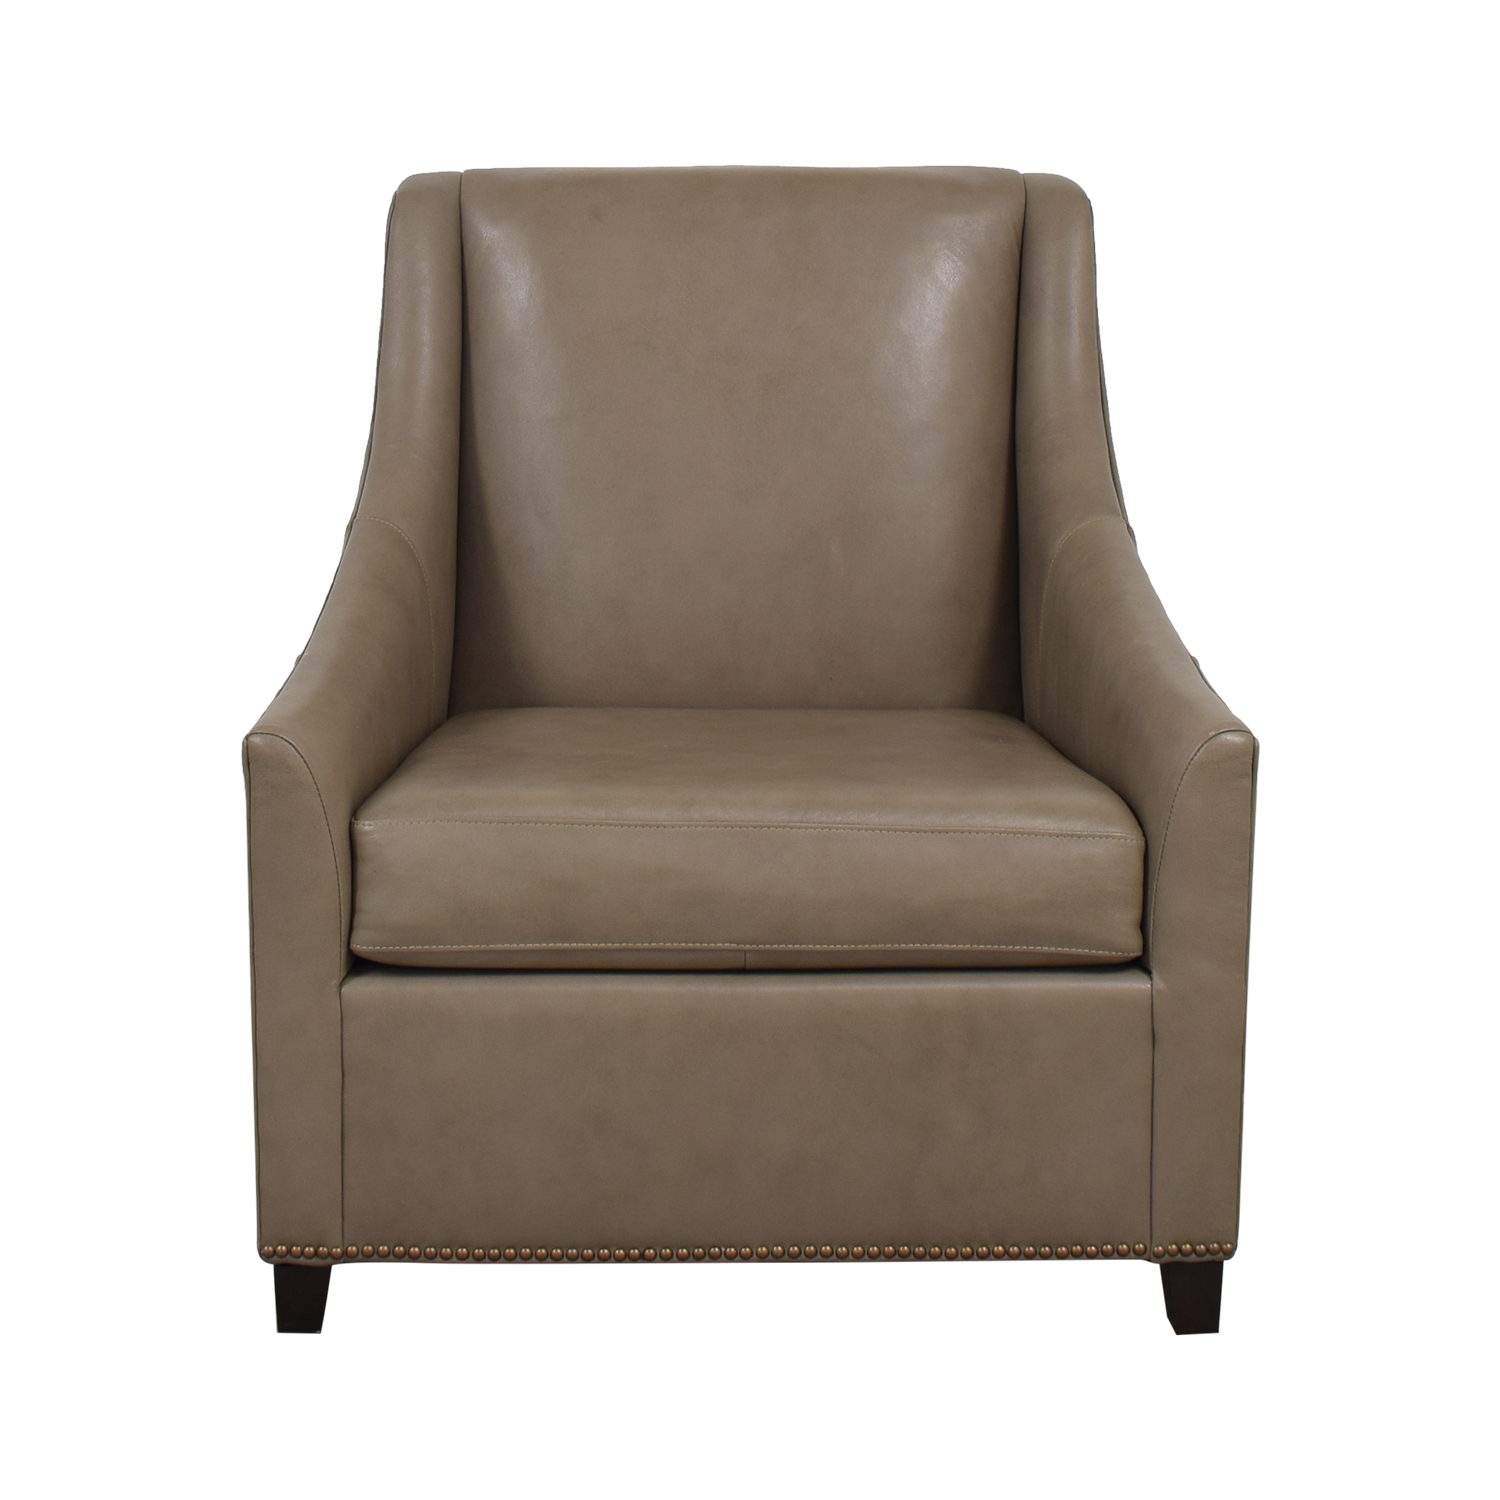 West Elm West Elm Accent Chair coupon